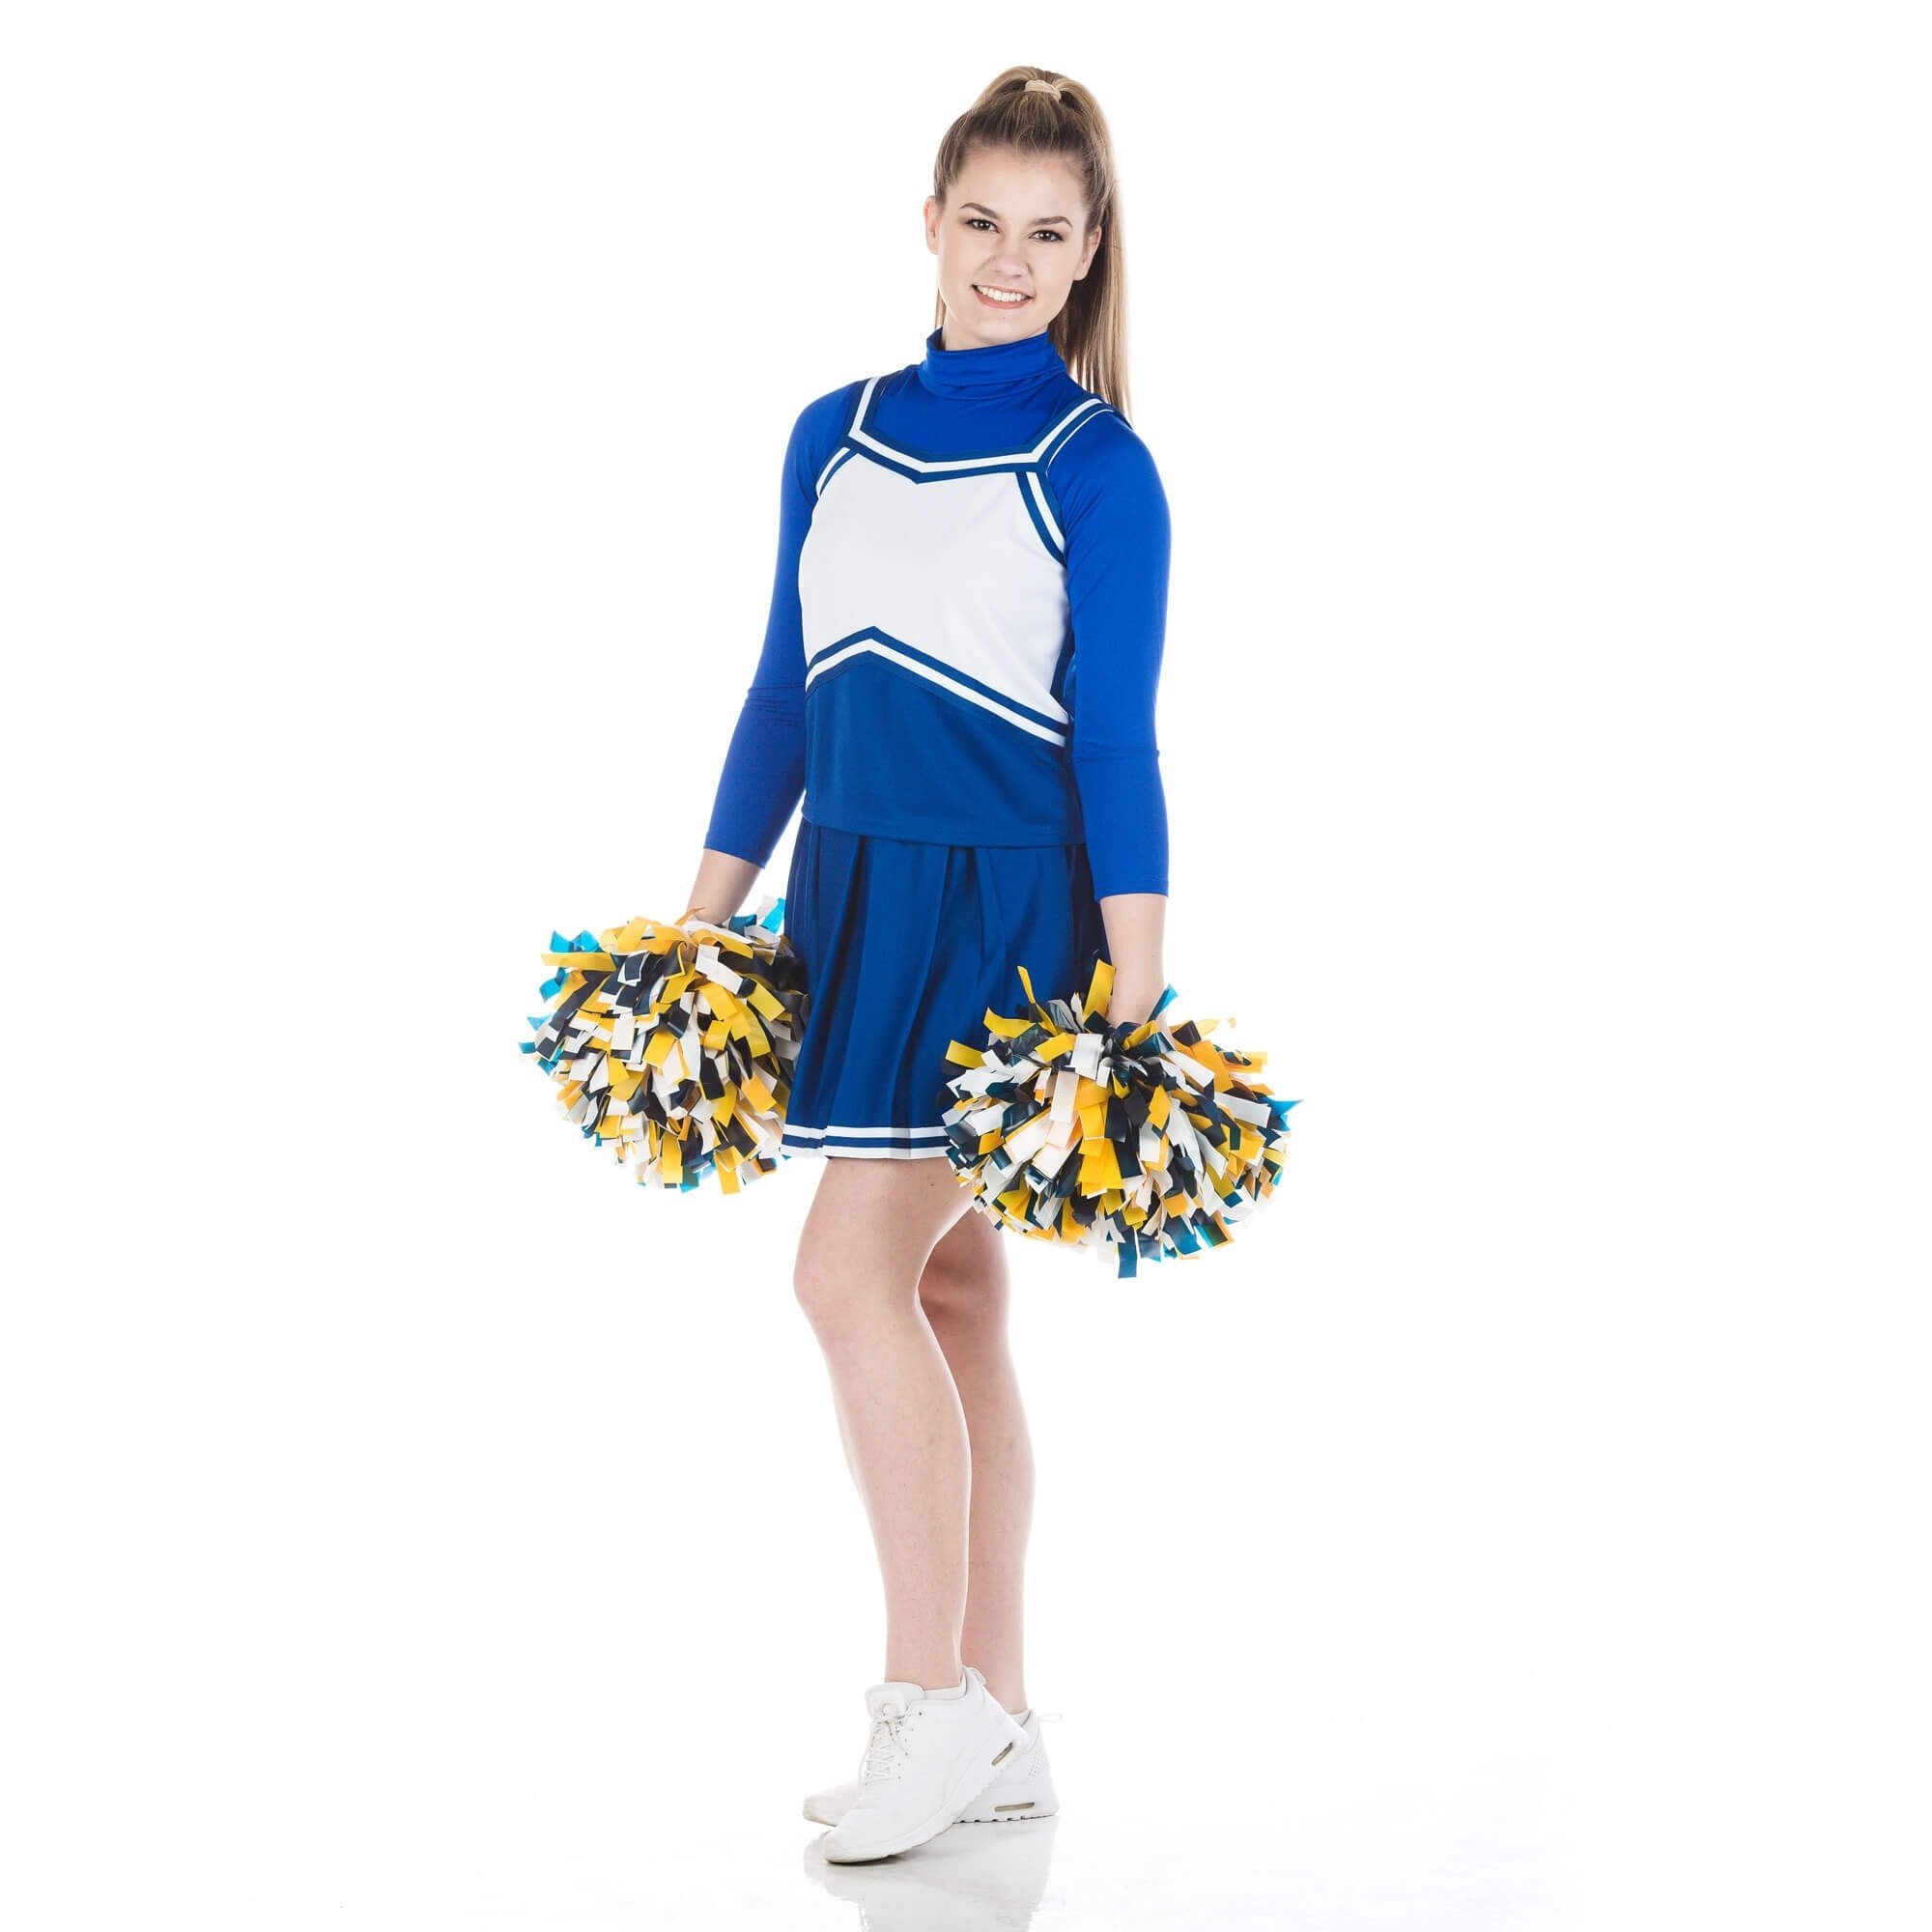 Danzcue Adult Sweetheart Knit Pleat Skirt Cheerleaders Uniform Set